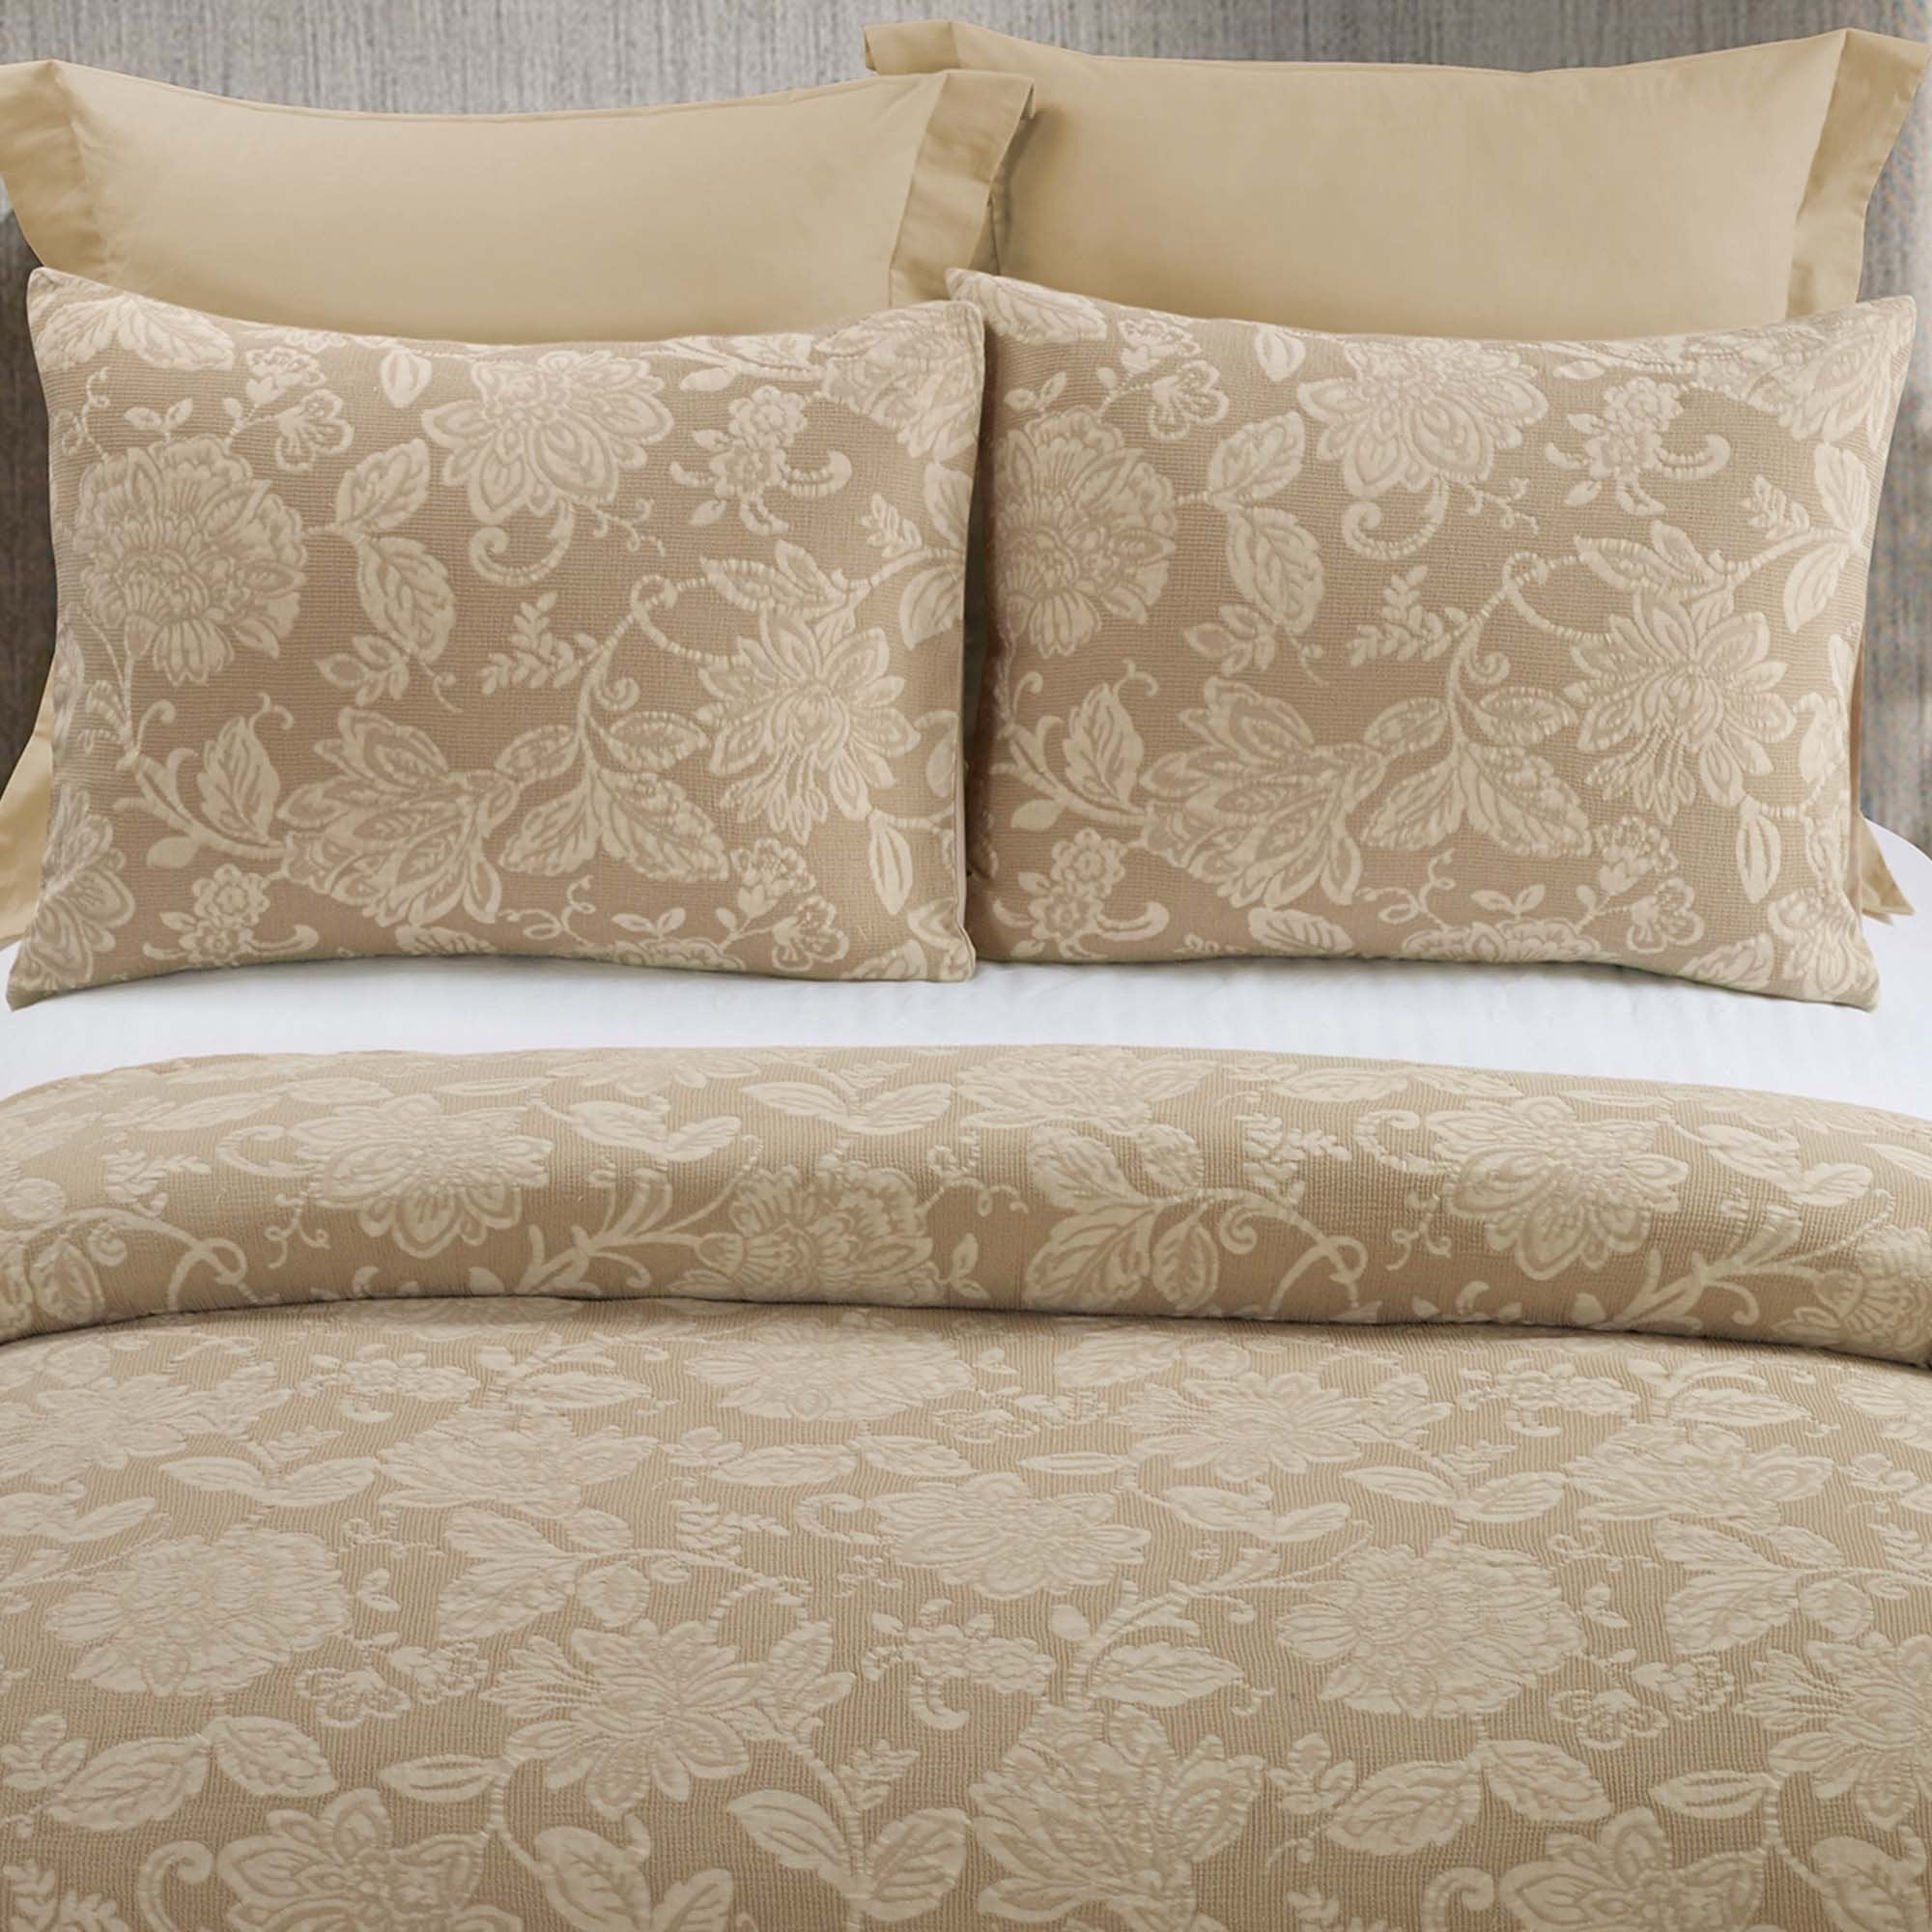 Amadora Cappuccino 3-Piece Comforter Set [Luxury comforter Sets] [by Latest Bedding]